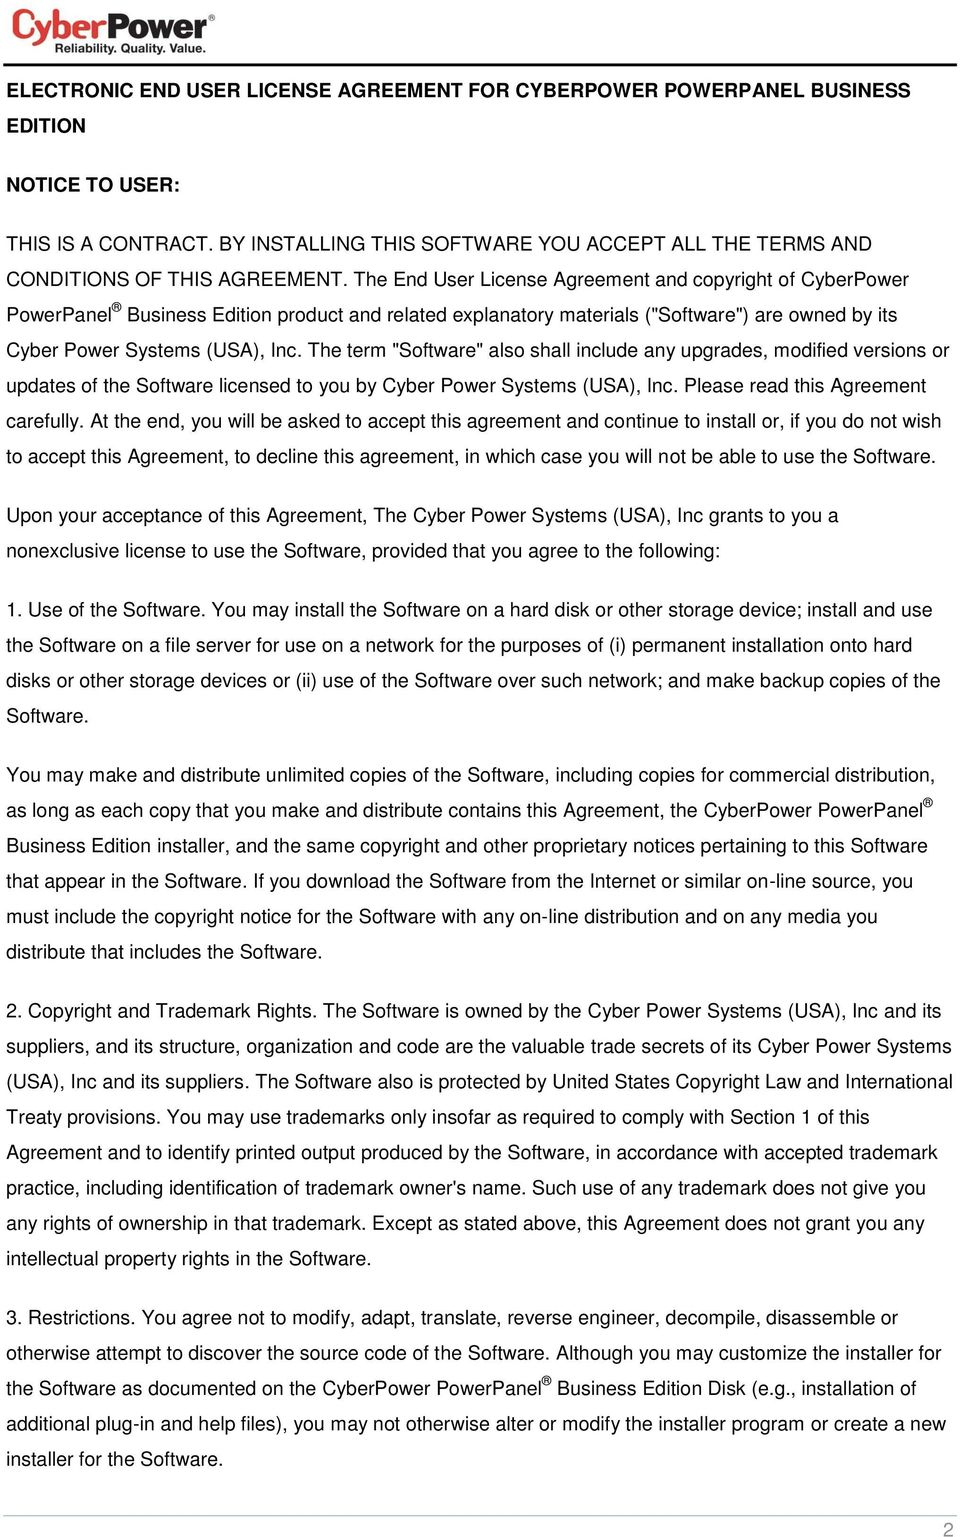 "The End User License Agreement and copyright of CyberPower PowerPanel Business Edition product and related explanatory materials (""Software"") are owned by its Cyber Power Systems (USA), Inc."